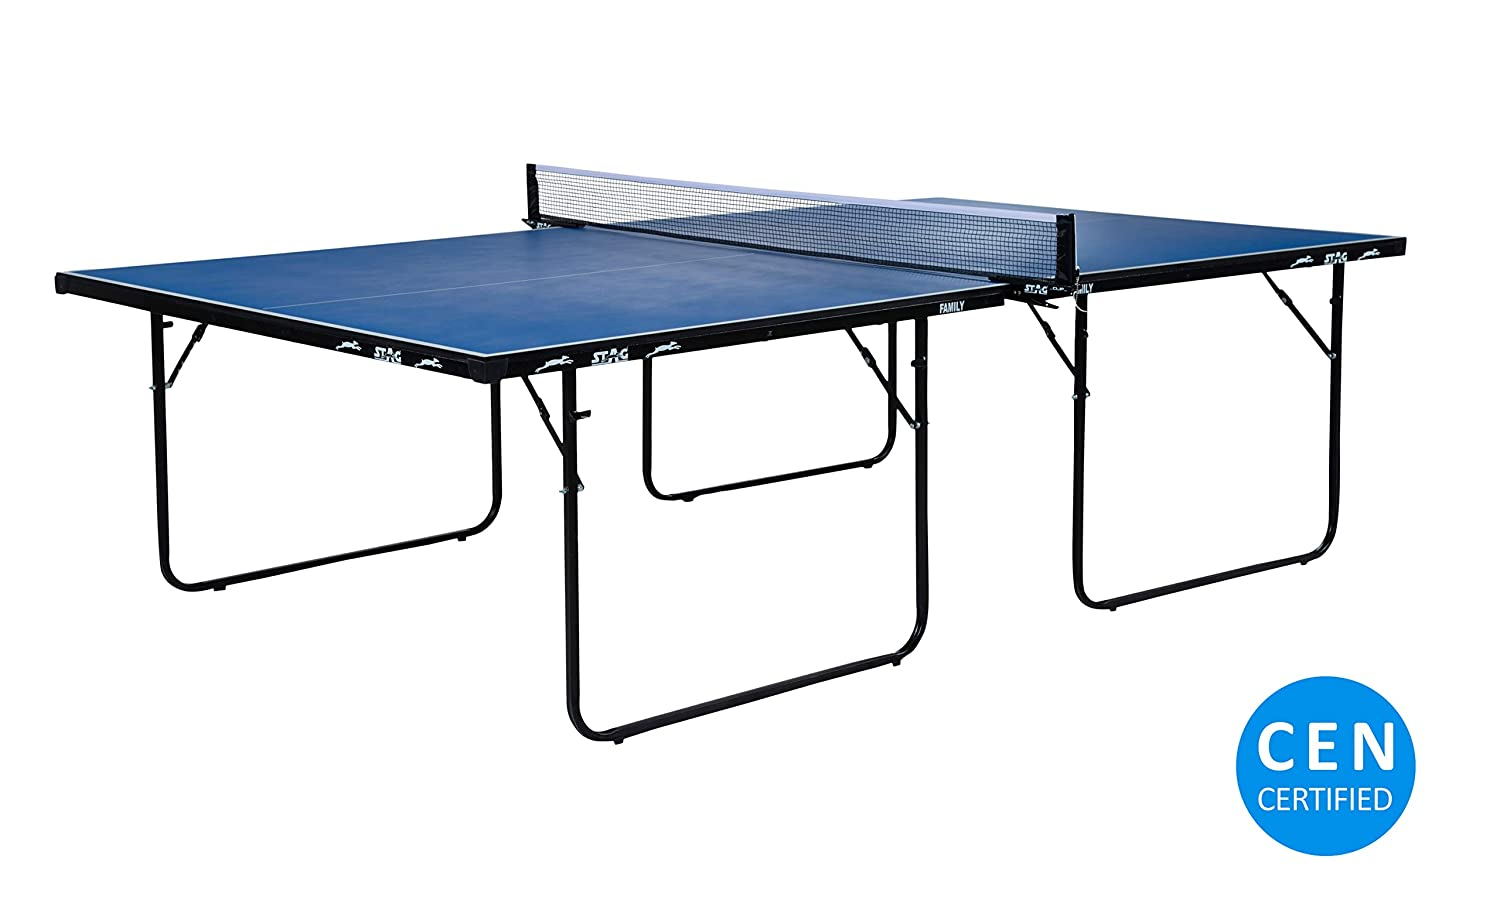 Top 5 Best selling table tennis tables under 15000 in india